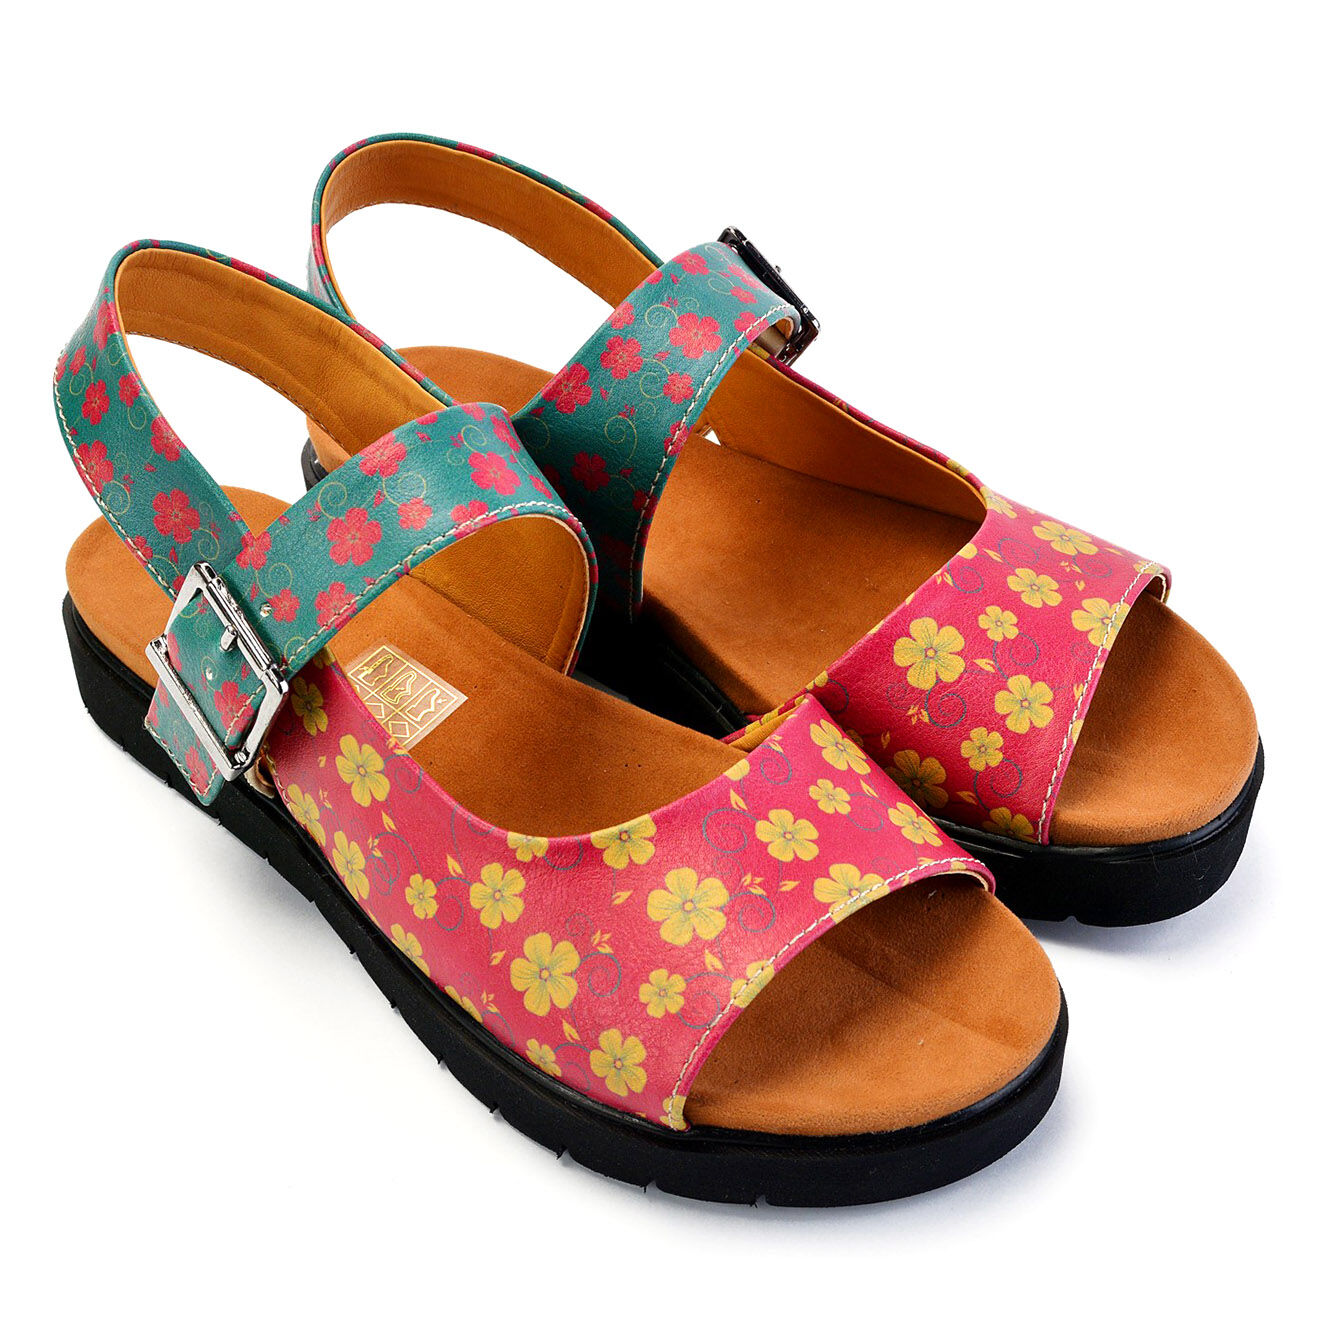 Sandales Martine multicolores